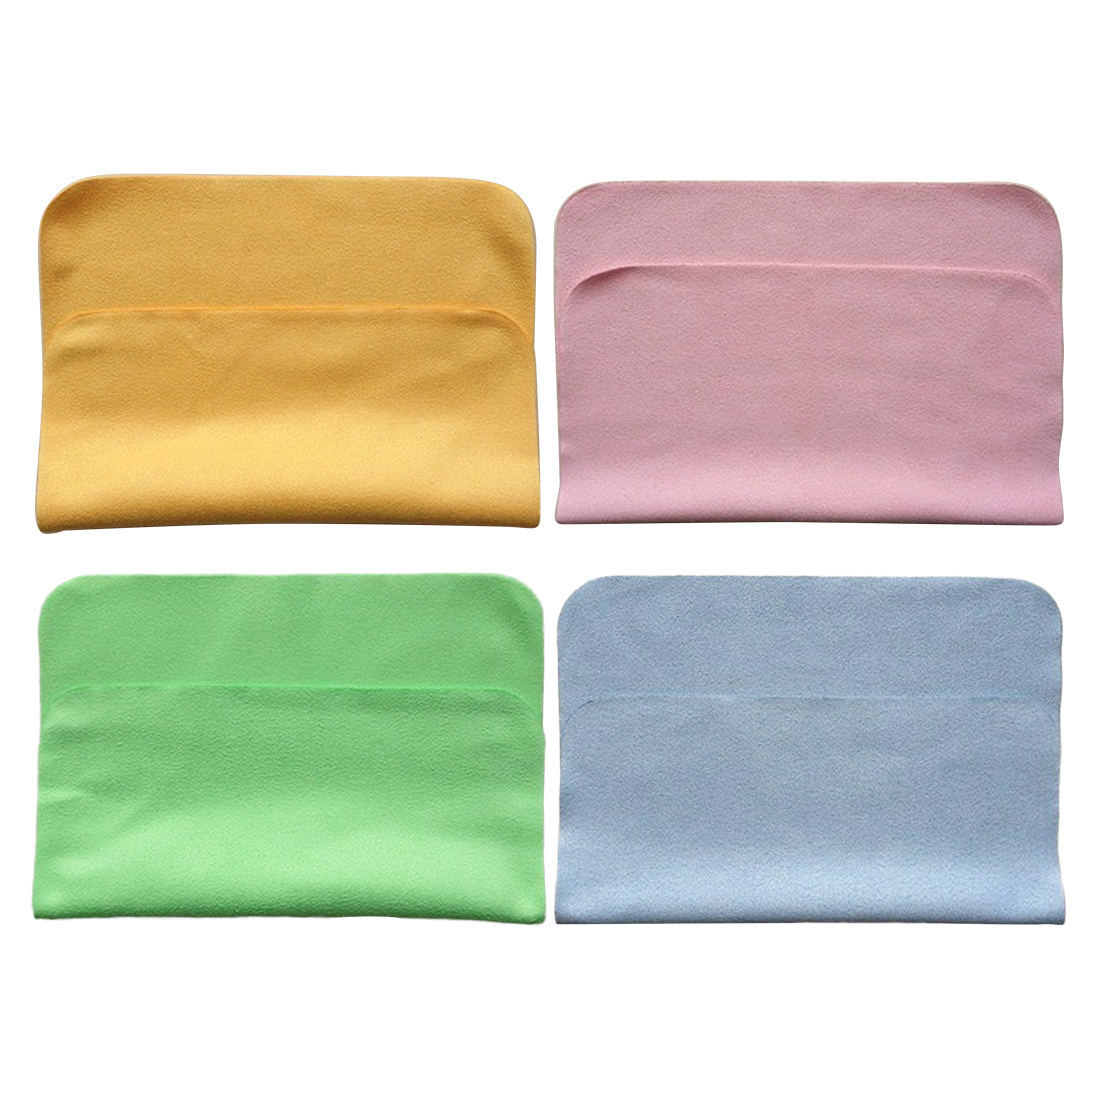 US $0.45 2% OFF|Glasses cleaning cloth microfiber kitchen towel cleaning  cloth high quality suede microfiber glasses cleaning cloth lens mobile-in  ...